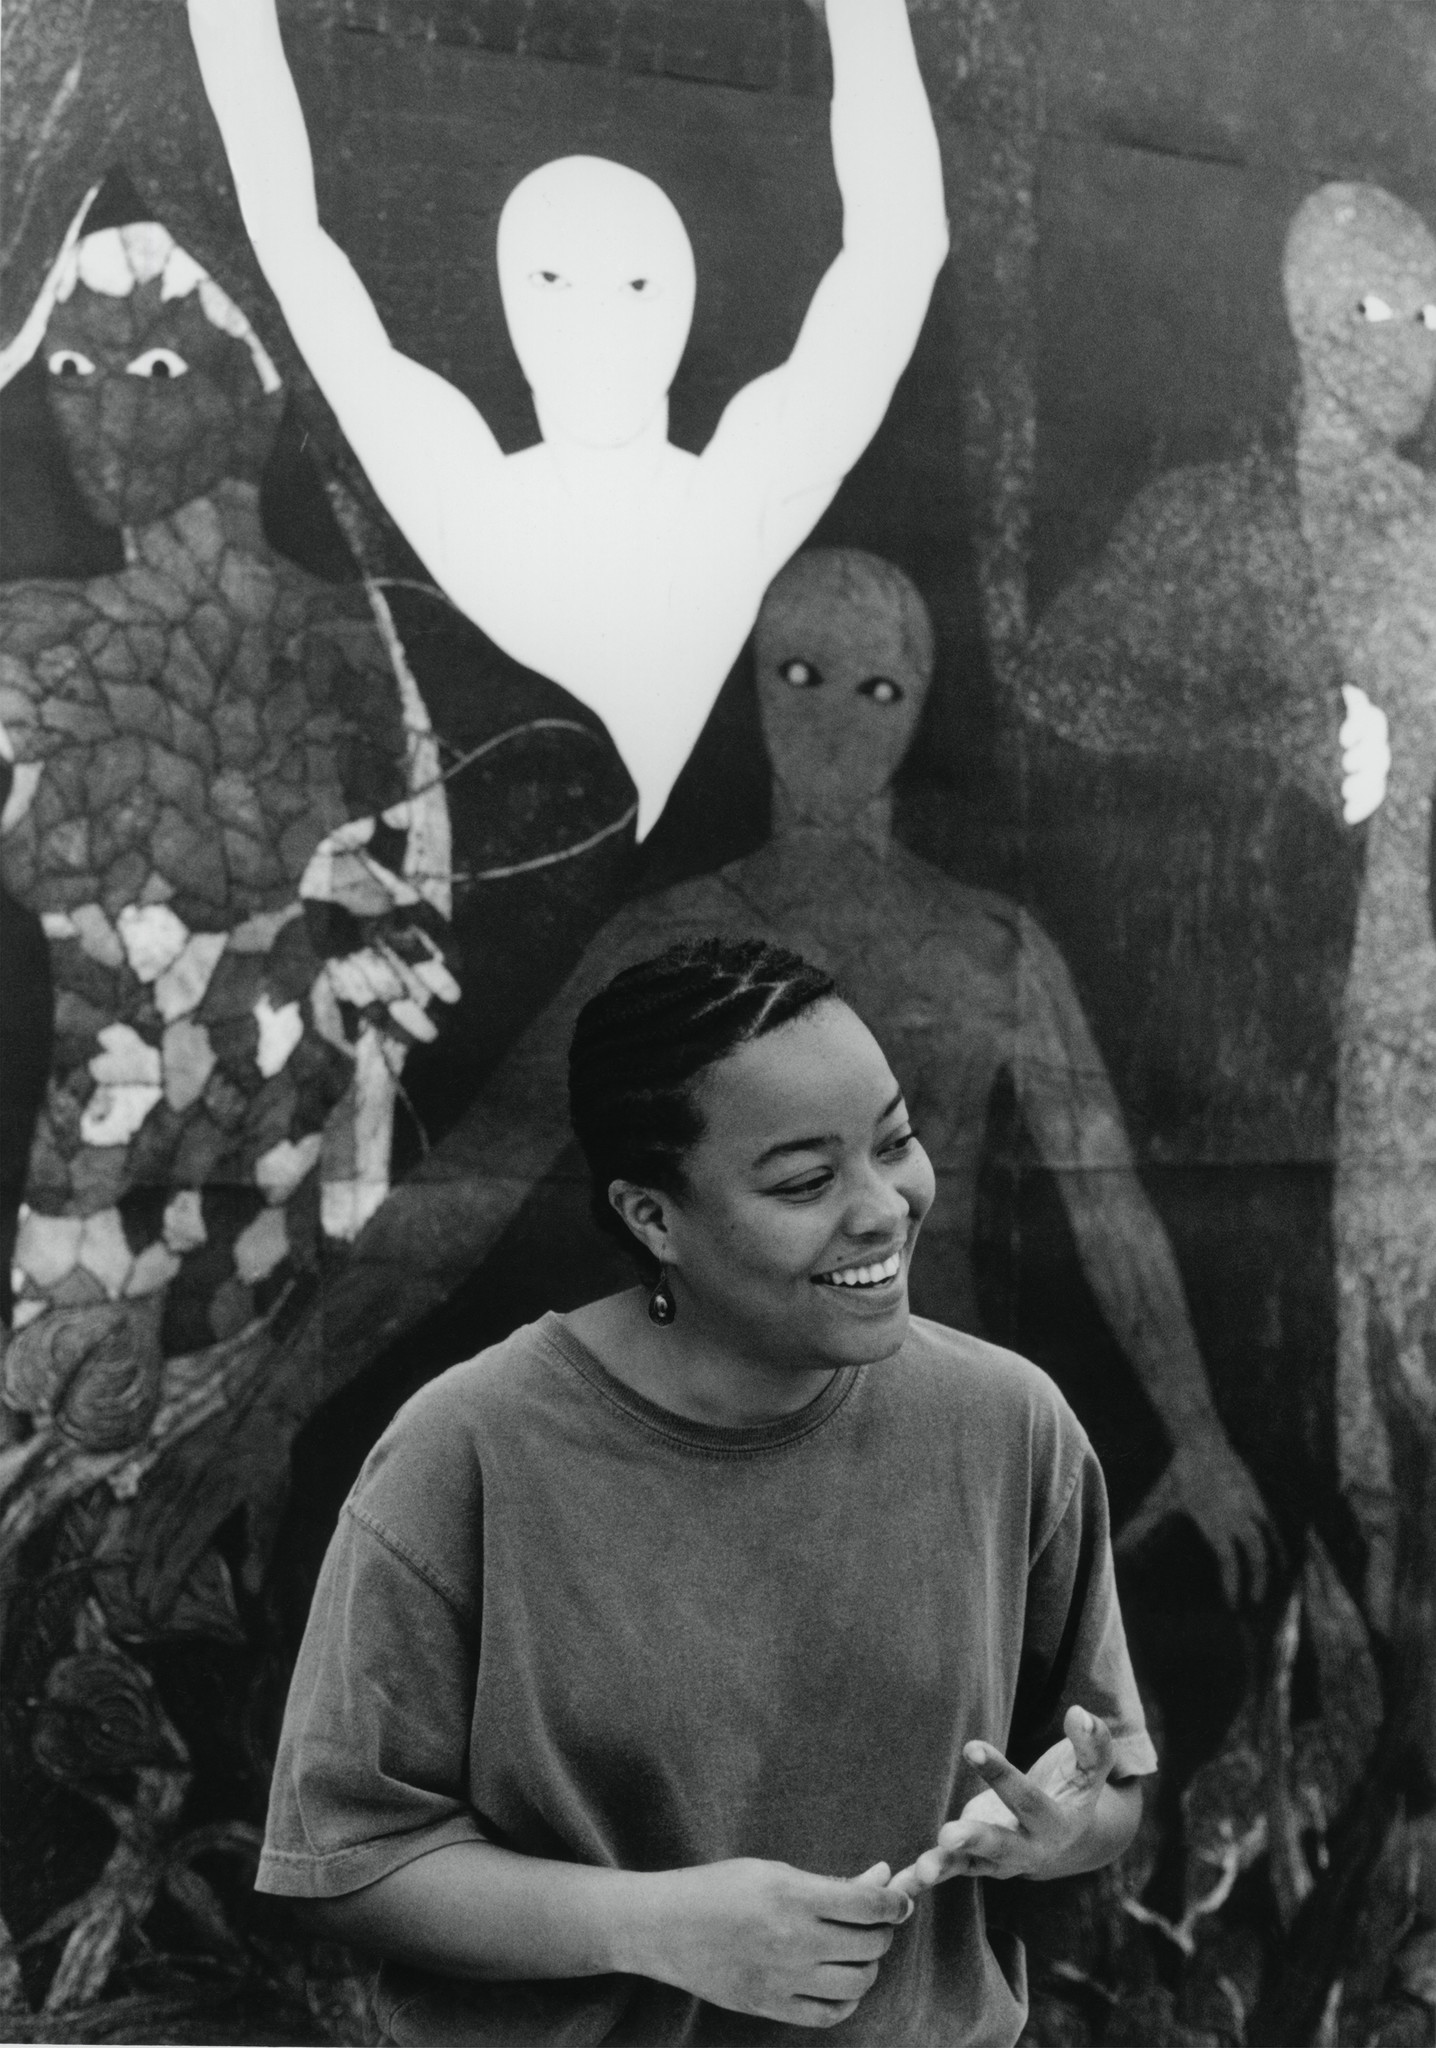 Belkis Ayon at the Havana Galerie, Zurich, Aug. 23, 1999.